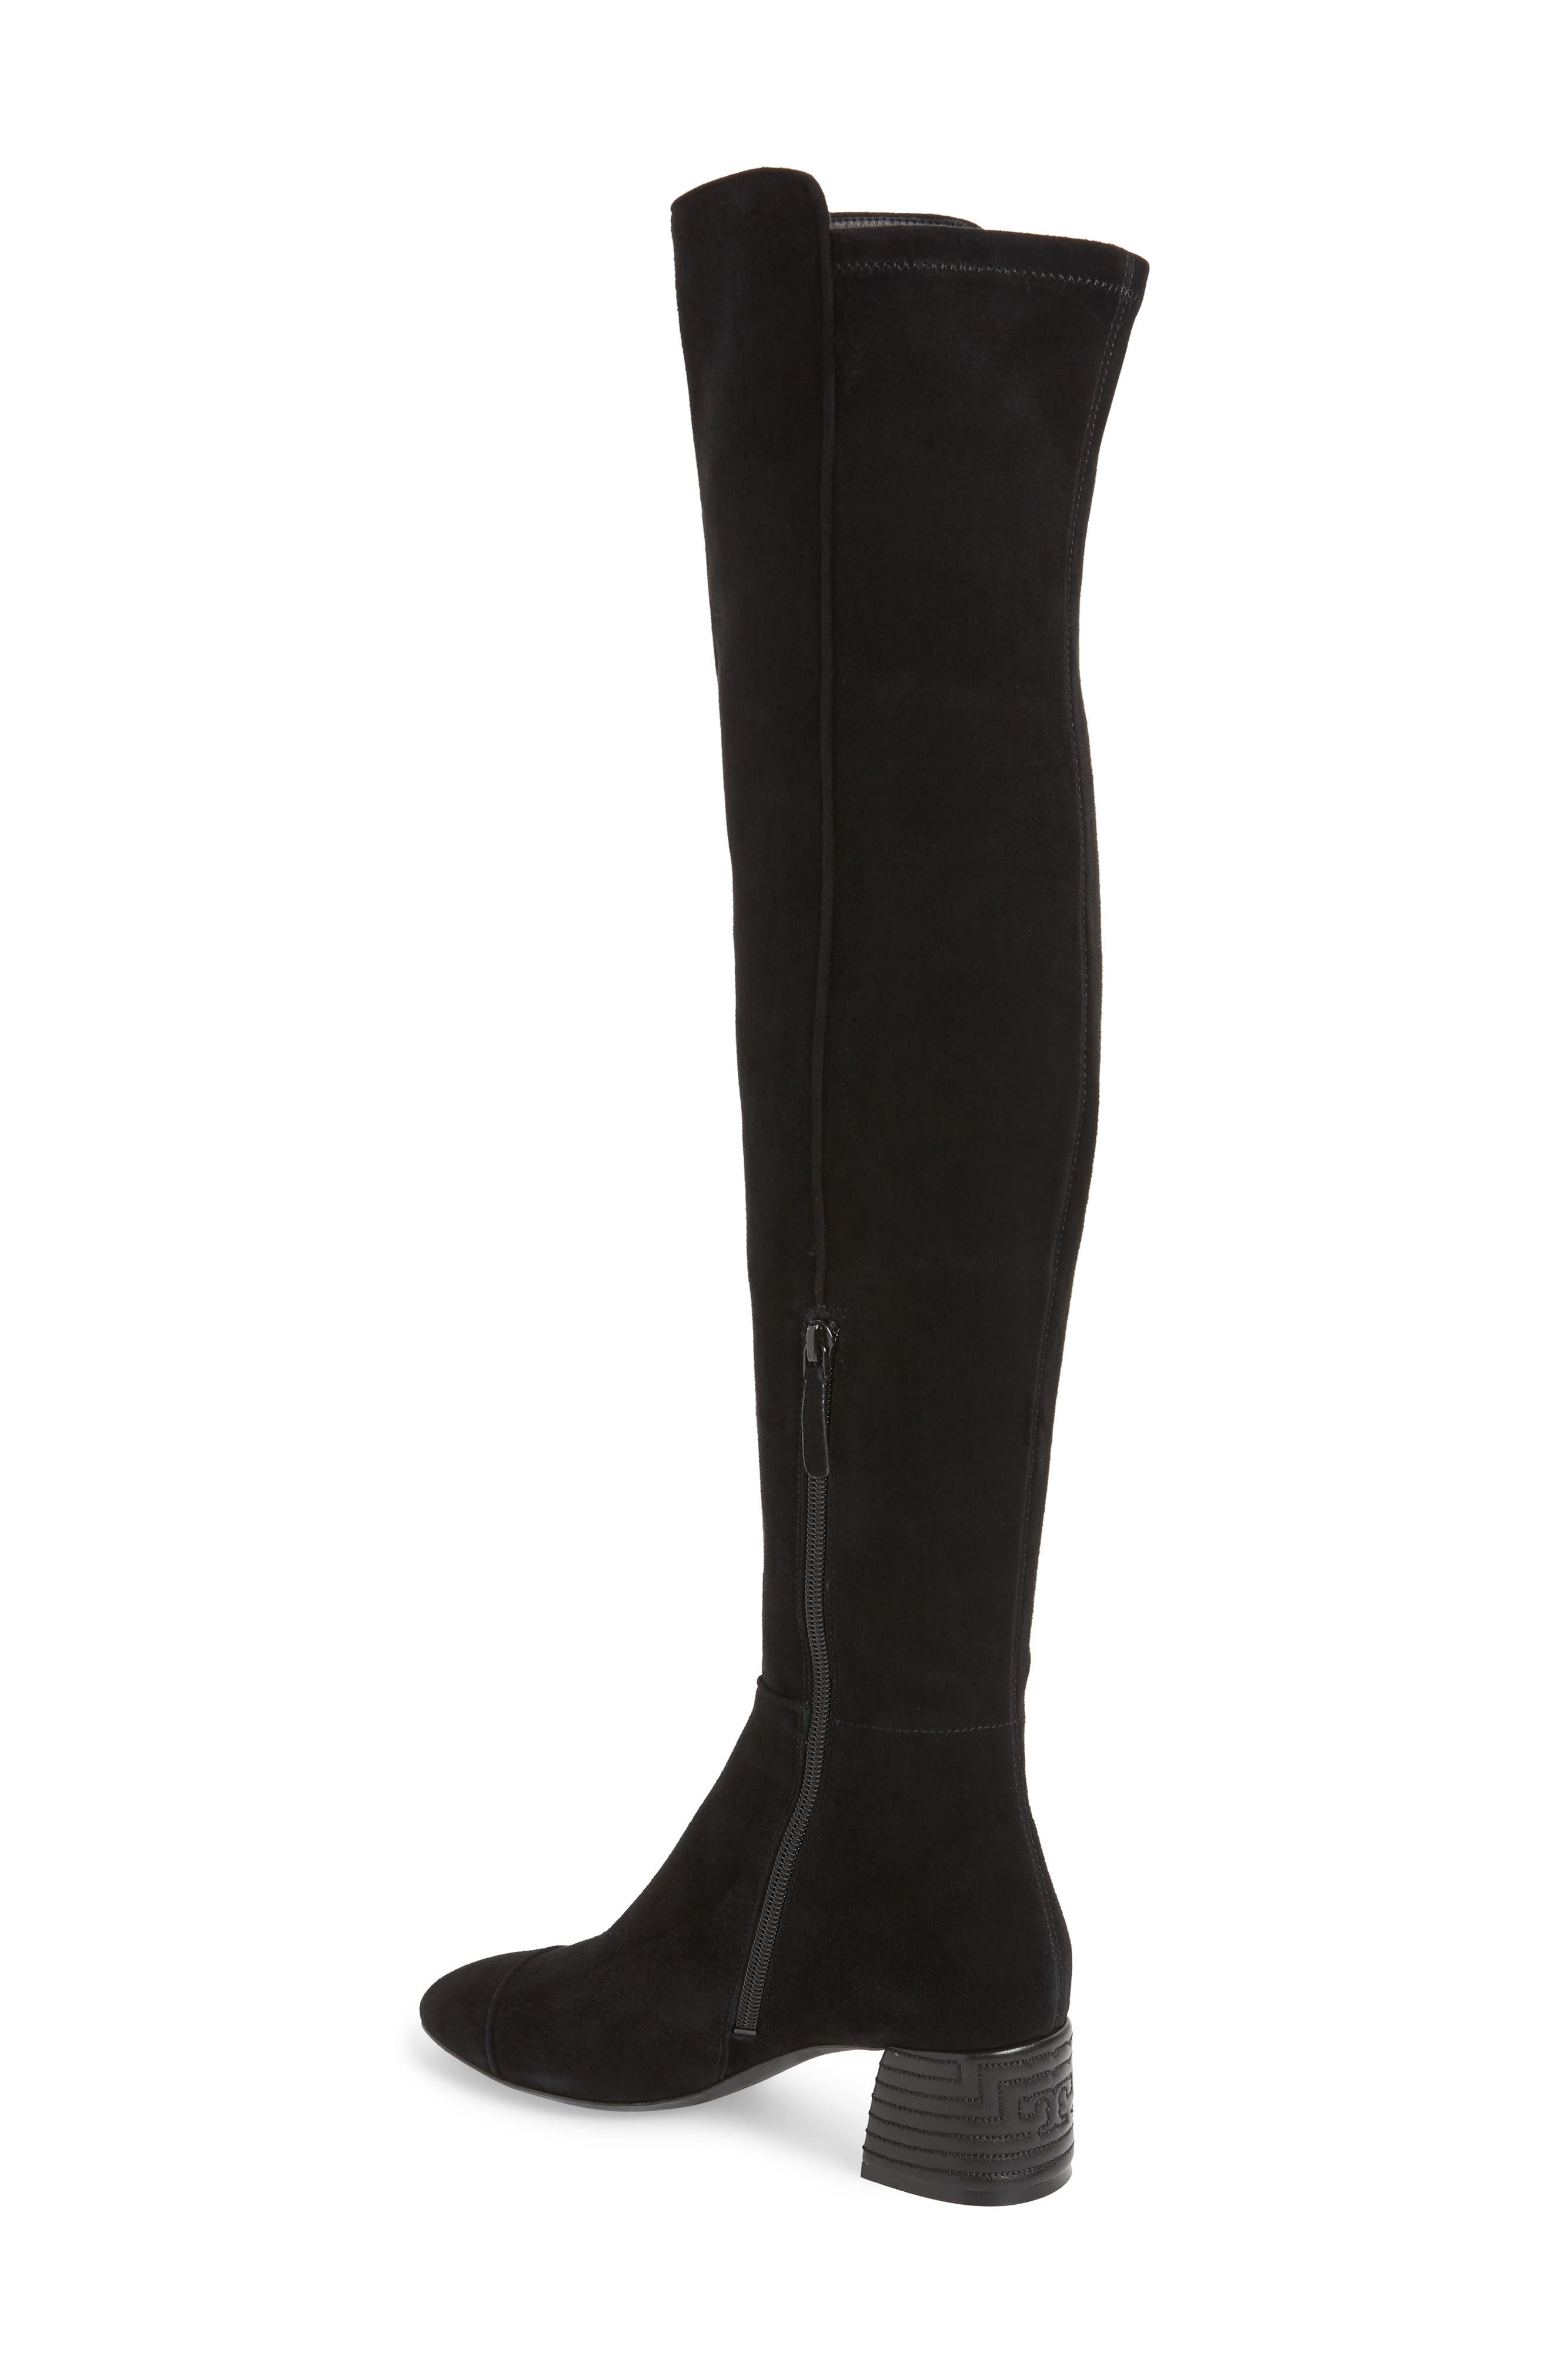 Nina Over the Knee Boot,                             Alternate thumbnail 2, color,                             006